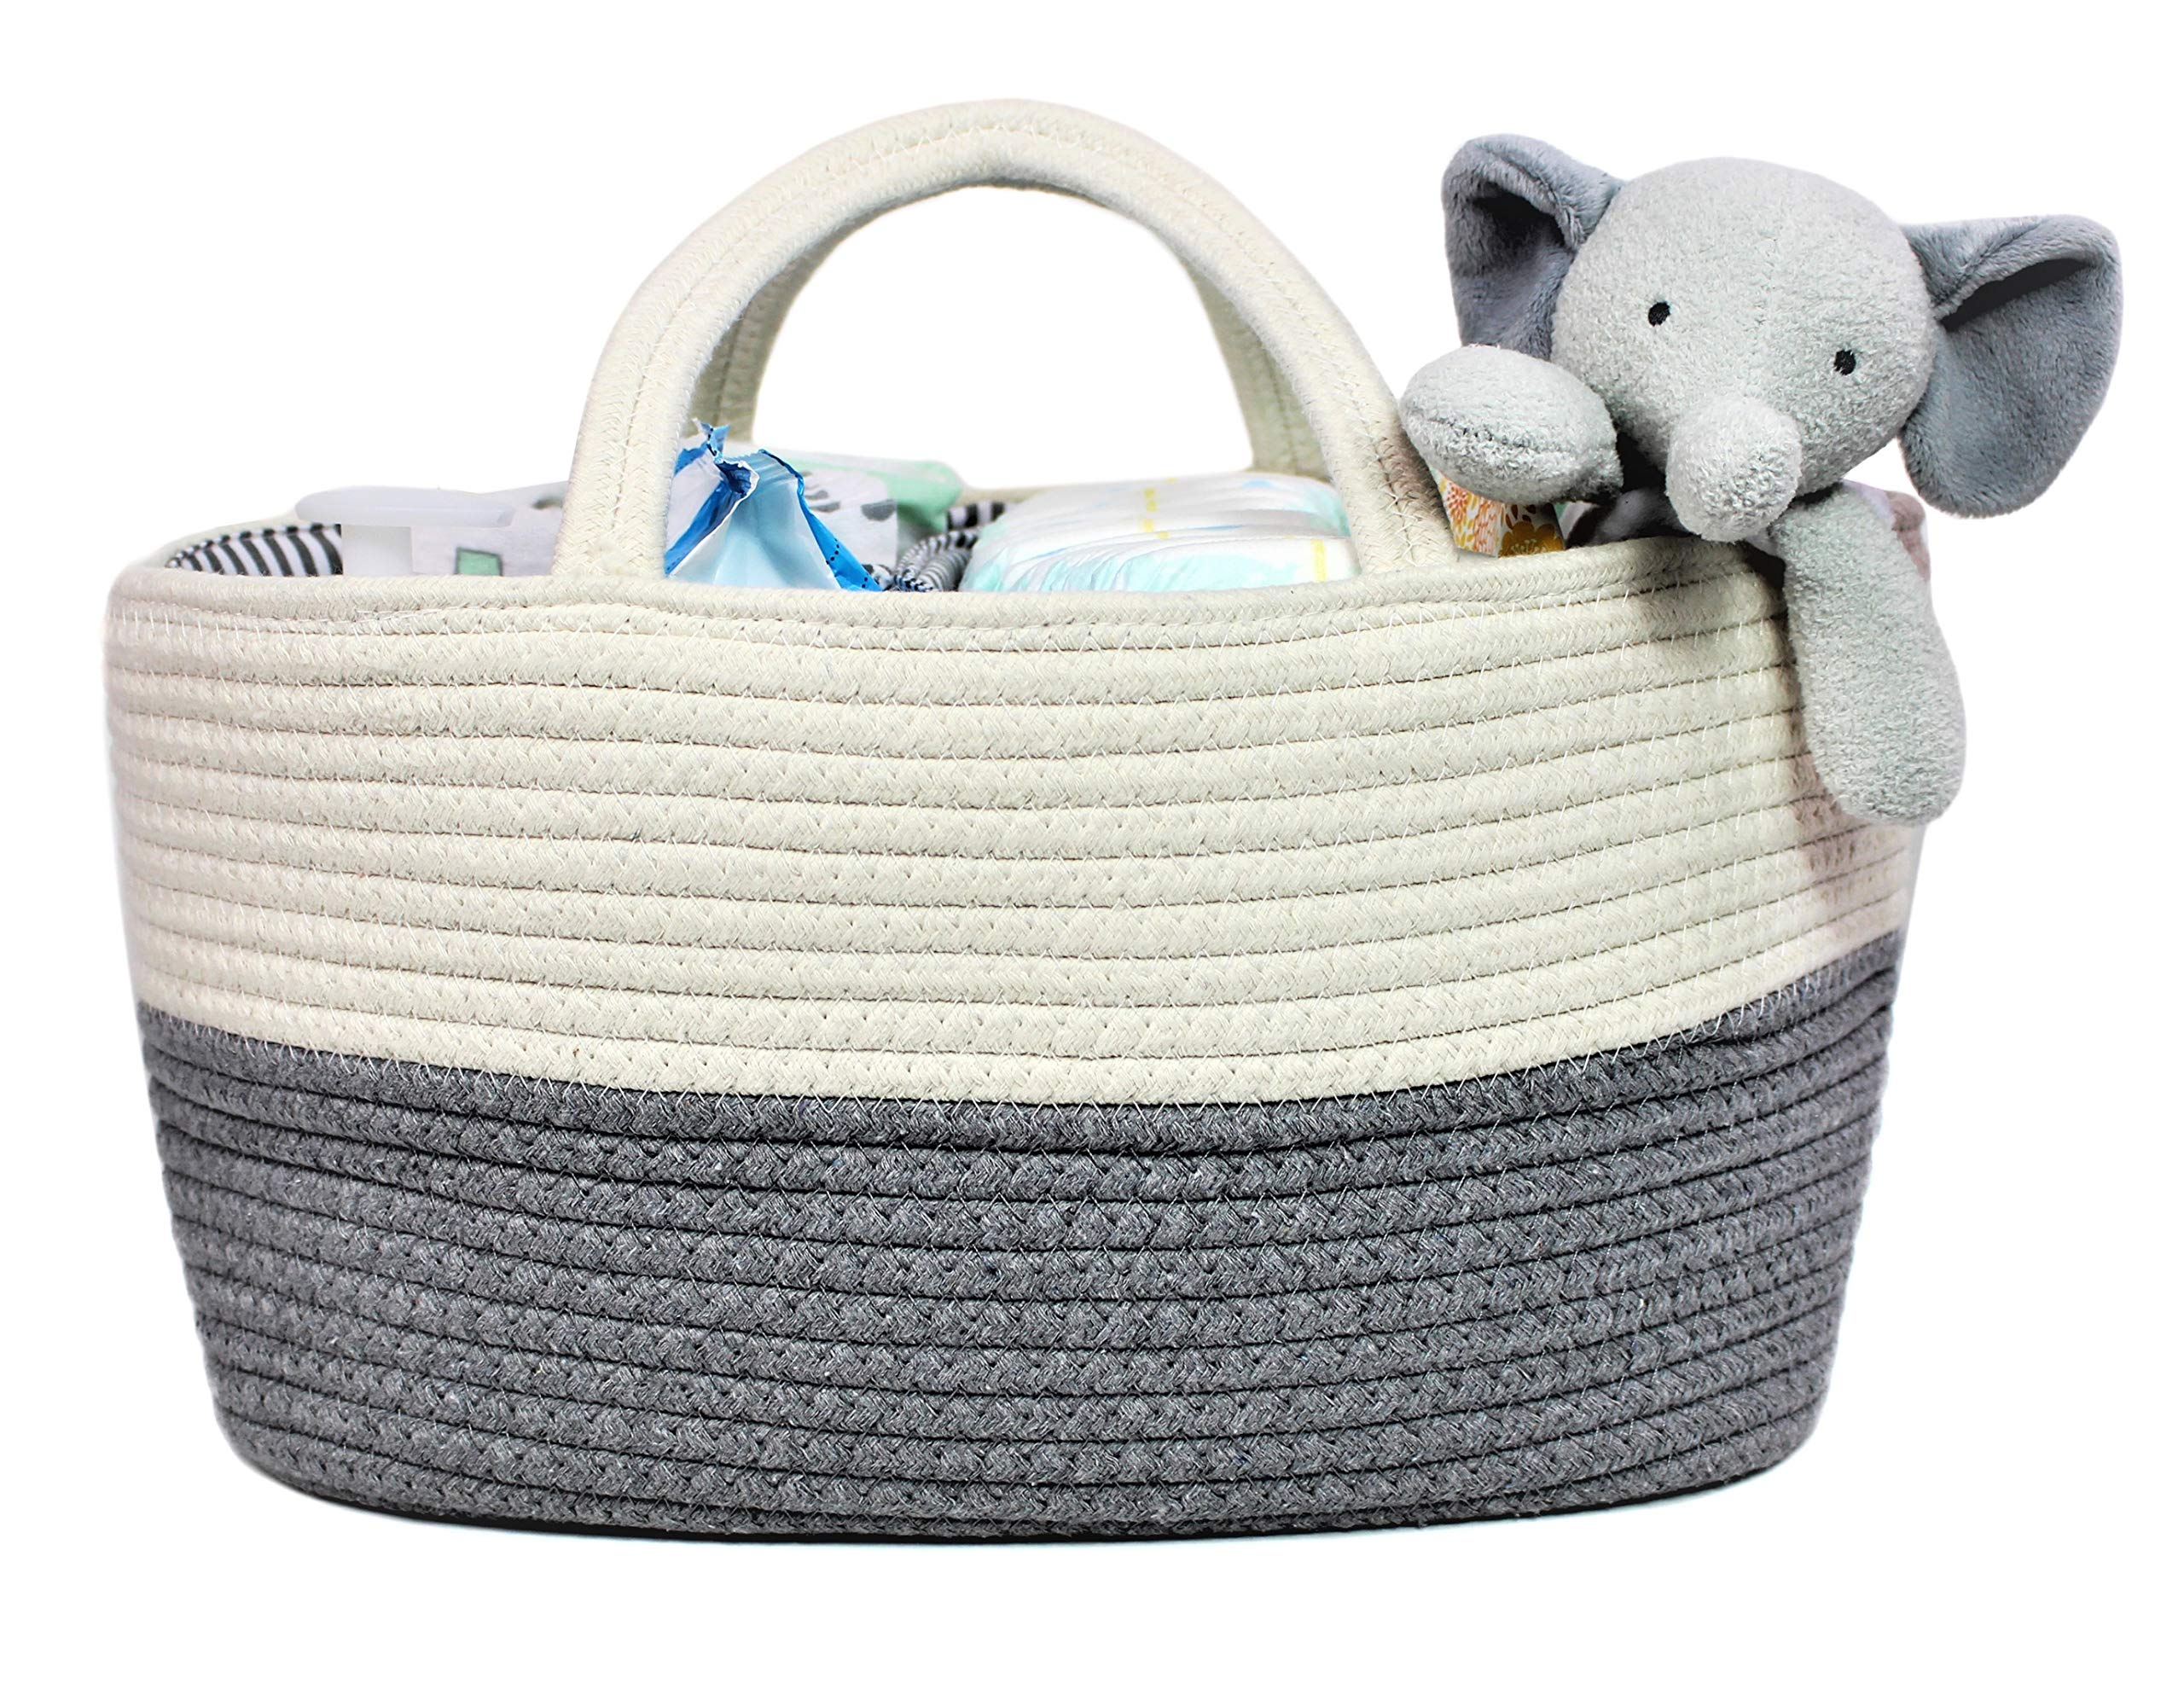 Summit One Baby Extra Large Diaper Caddy Organizer Basket (17 x 10 x 8 Inches) Spacious and Sturdy Woven Cotton Rope Diaper Storage with Handles - Includes Diaper Changing Pad | White Gray